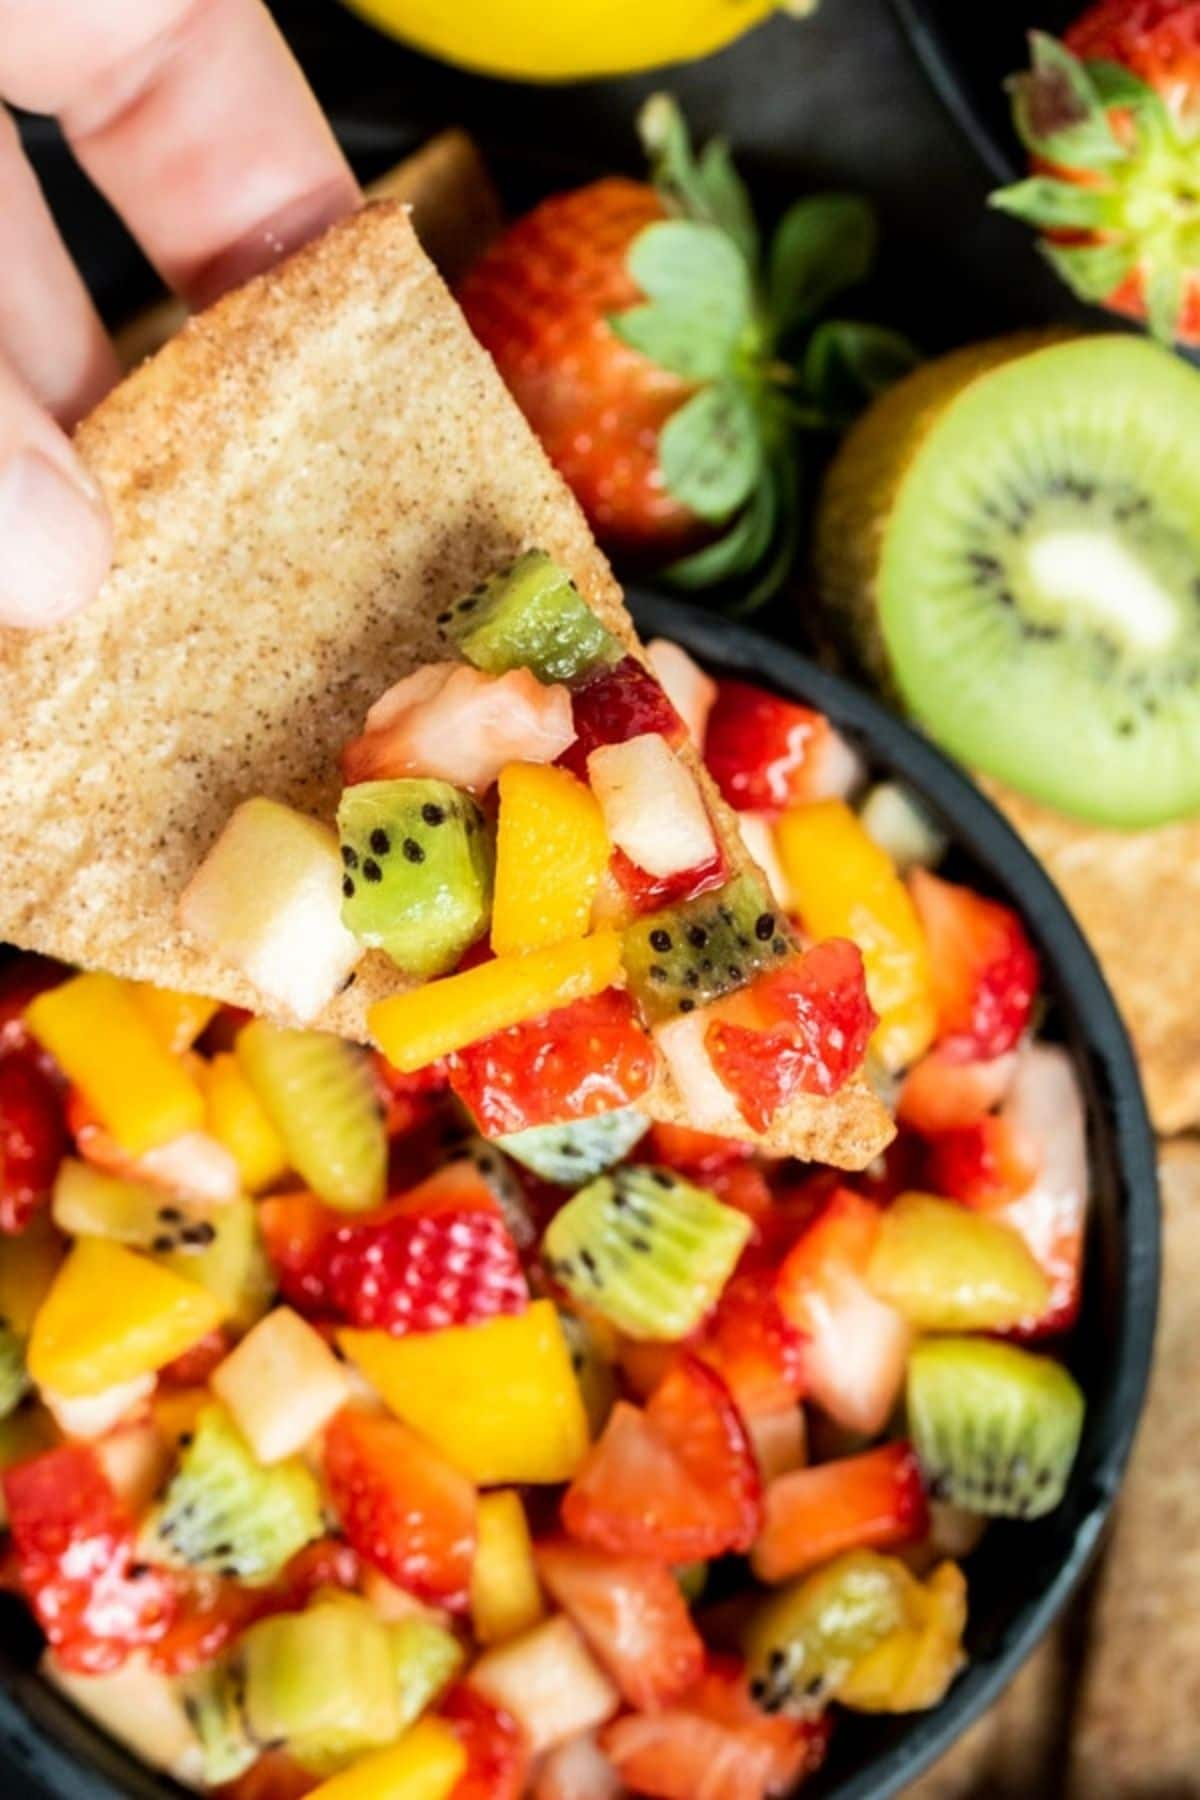 Chip dipping into fruit salsa in black bowl